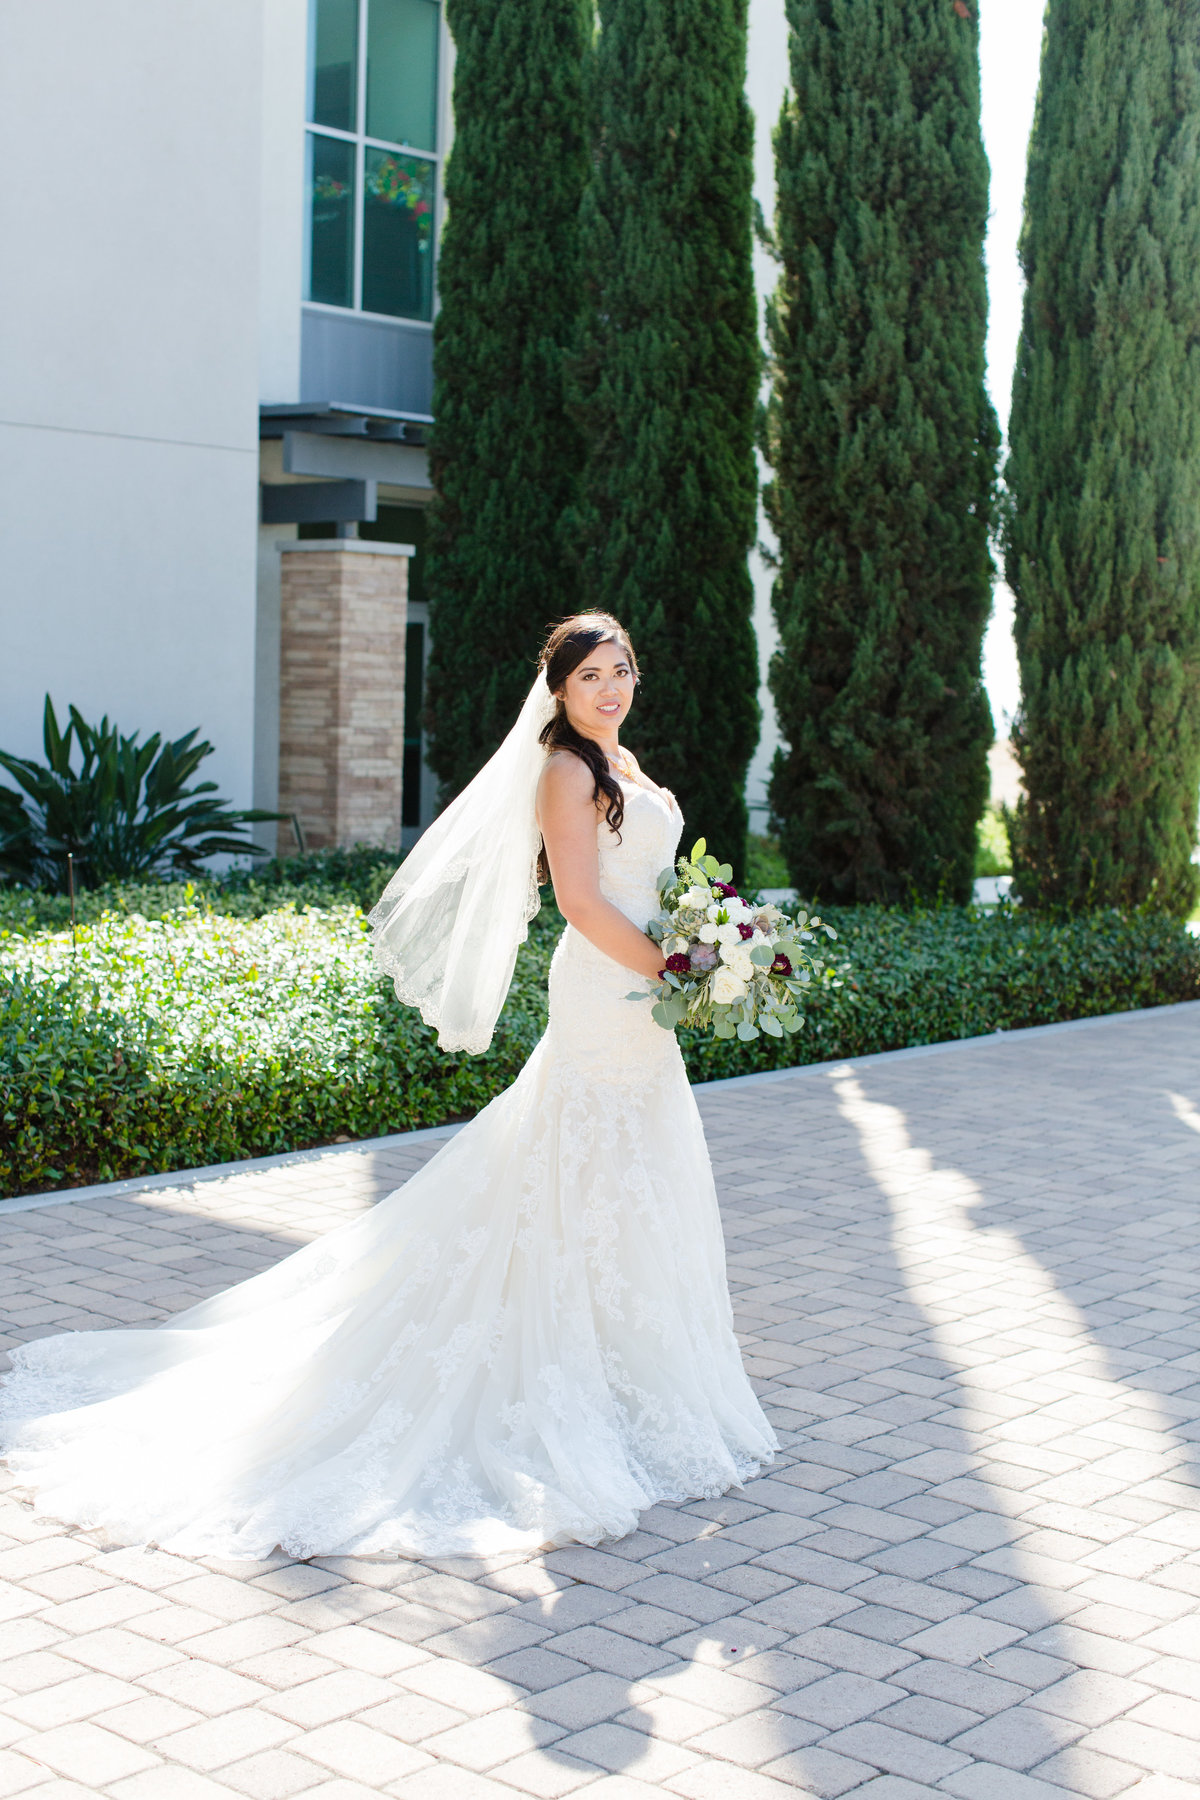 Katherine_beth_photography_San_diego_wedding_photographer_san_diego_wedding_the_venue_at_eastlake_001